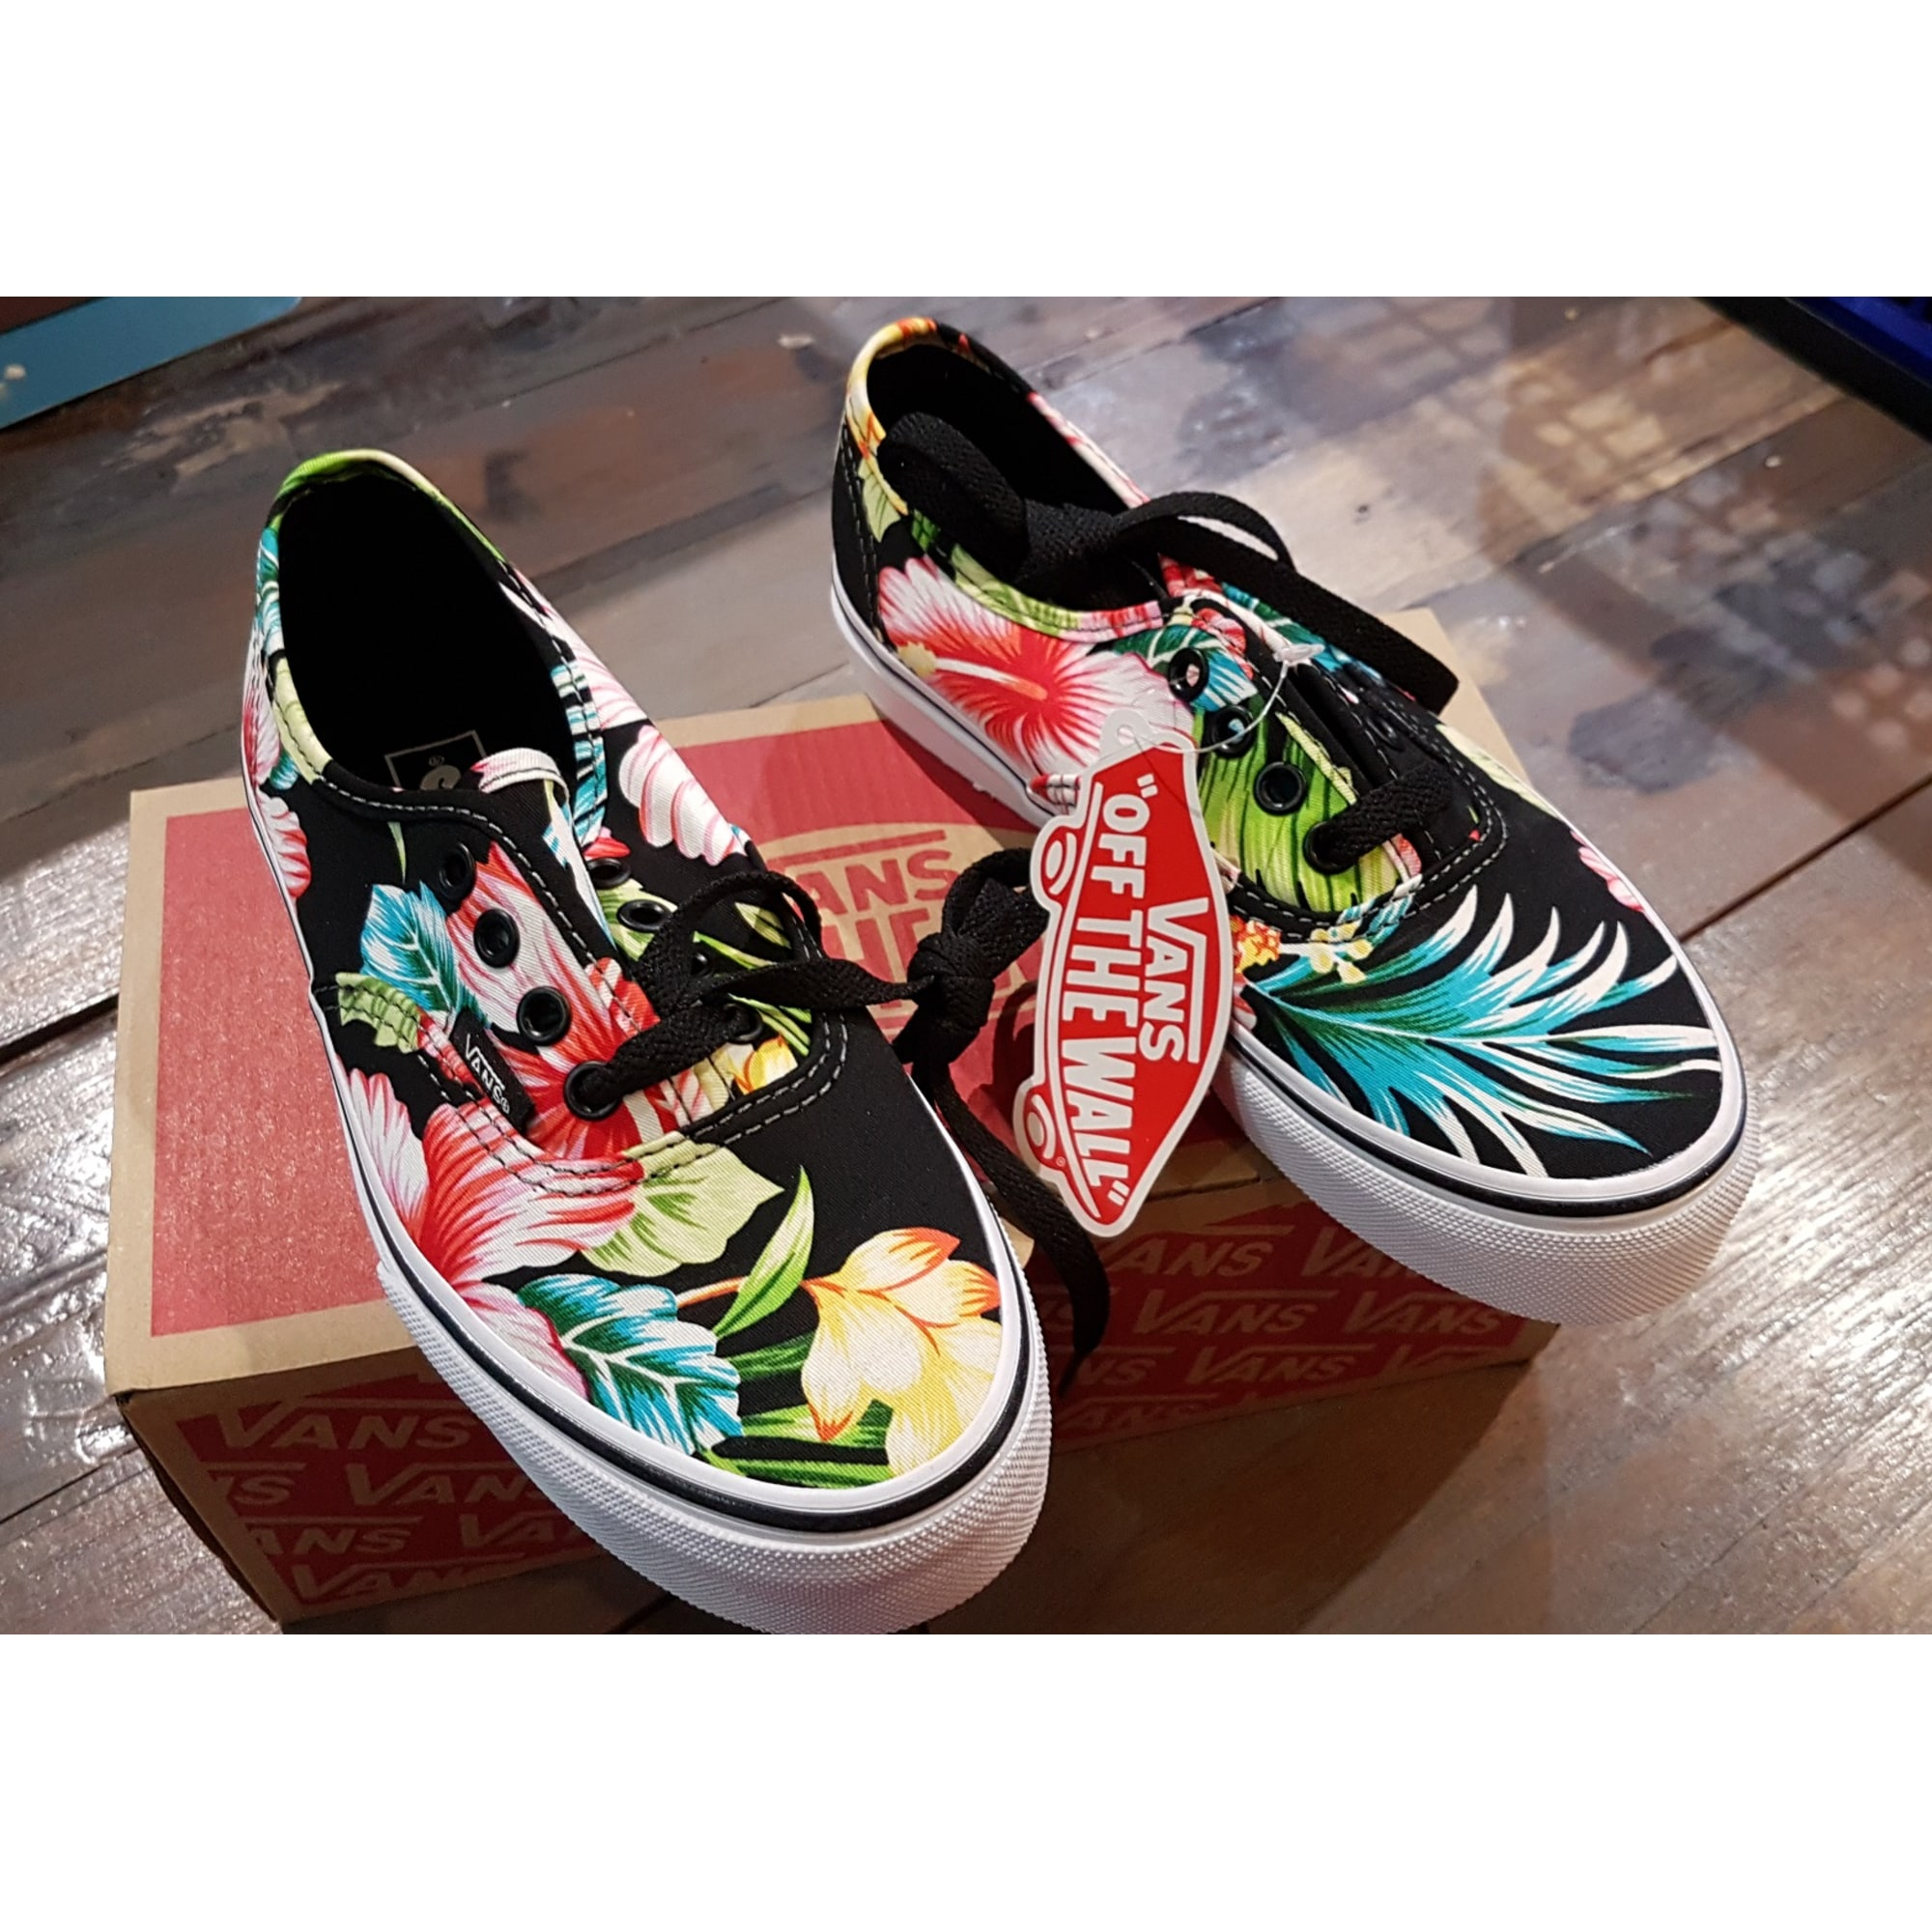 chaussure vans taille grand ou petit 51% remise www